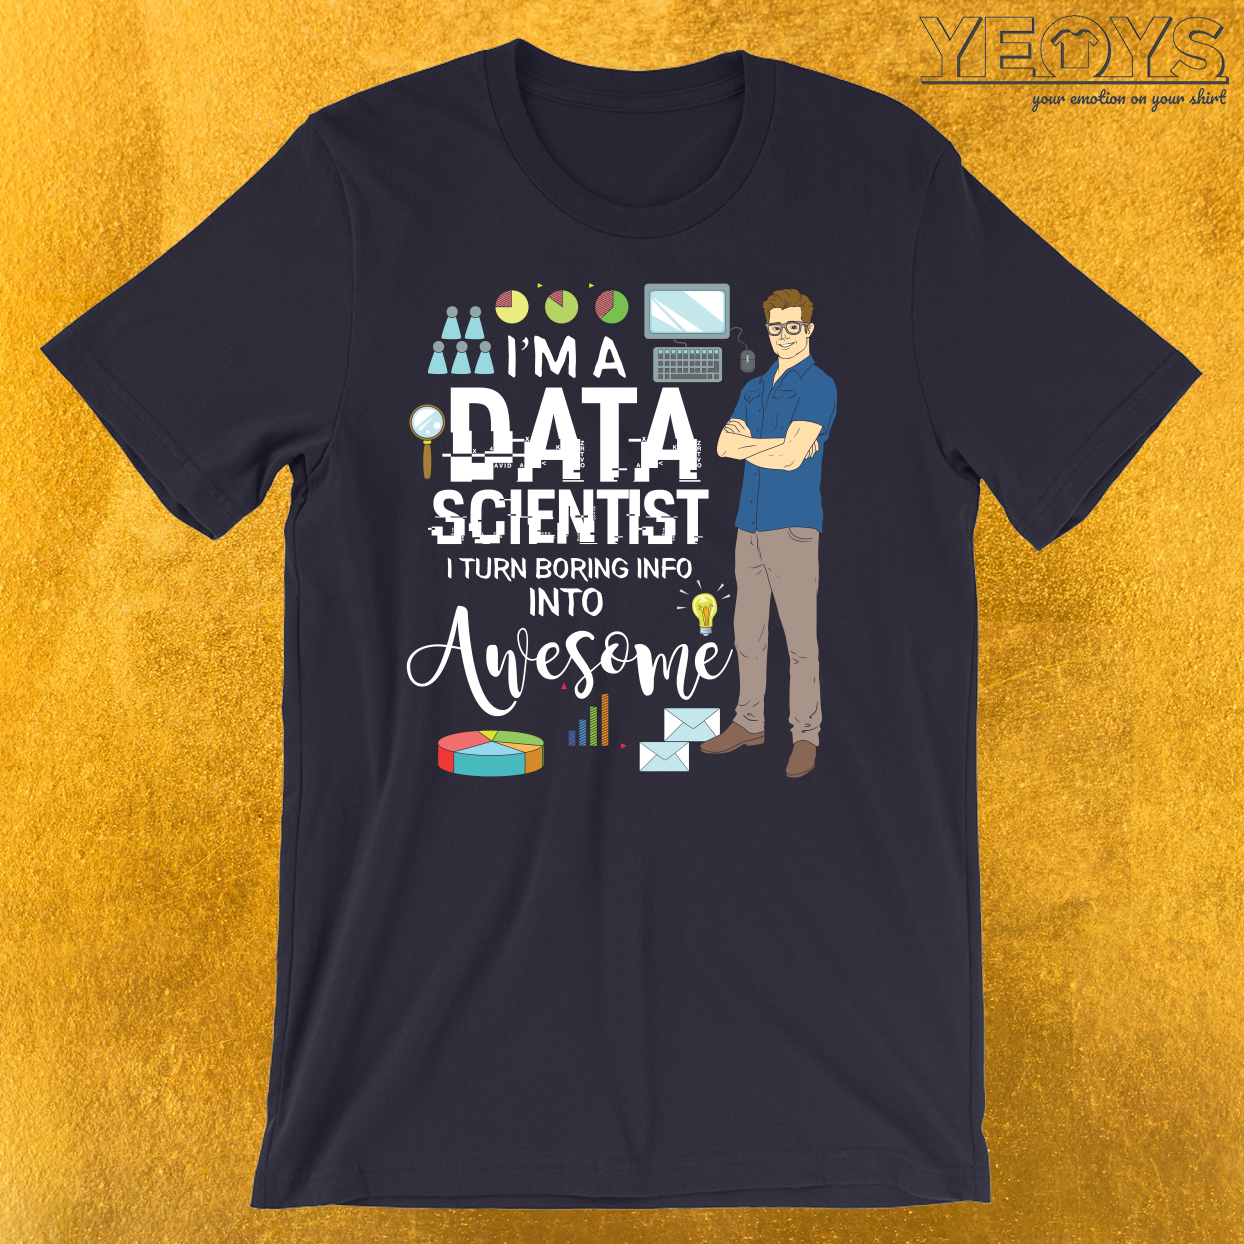 I'm A Data Scientist I Turn Boring Info Into Awesome T-Shirt